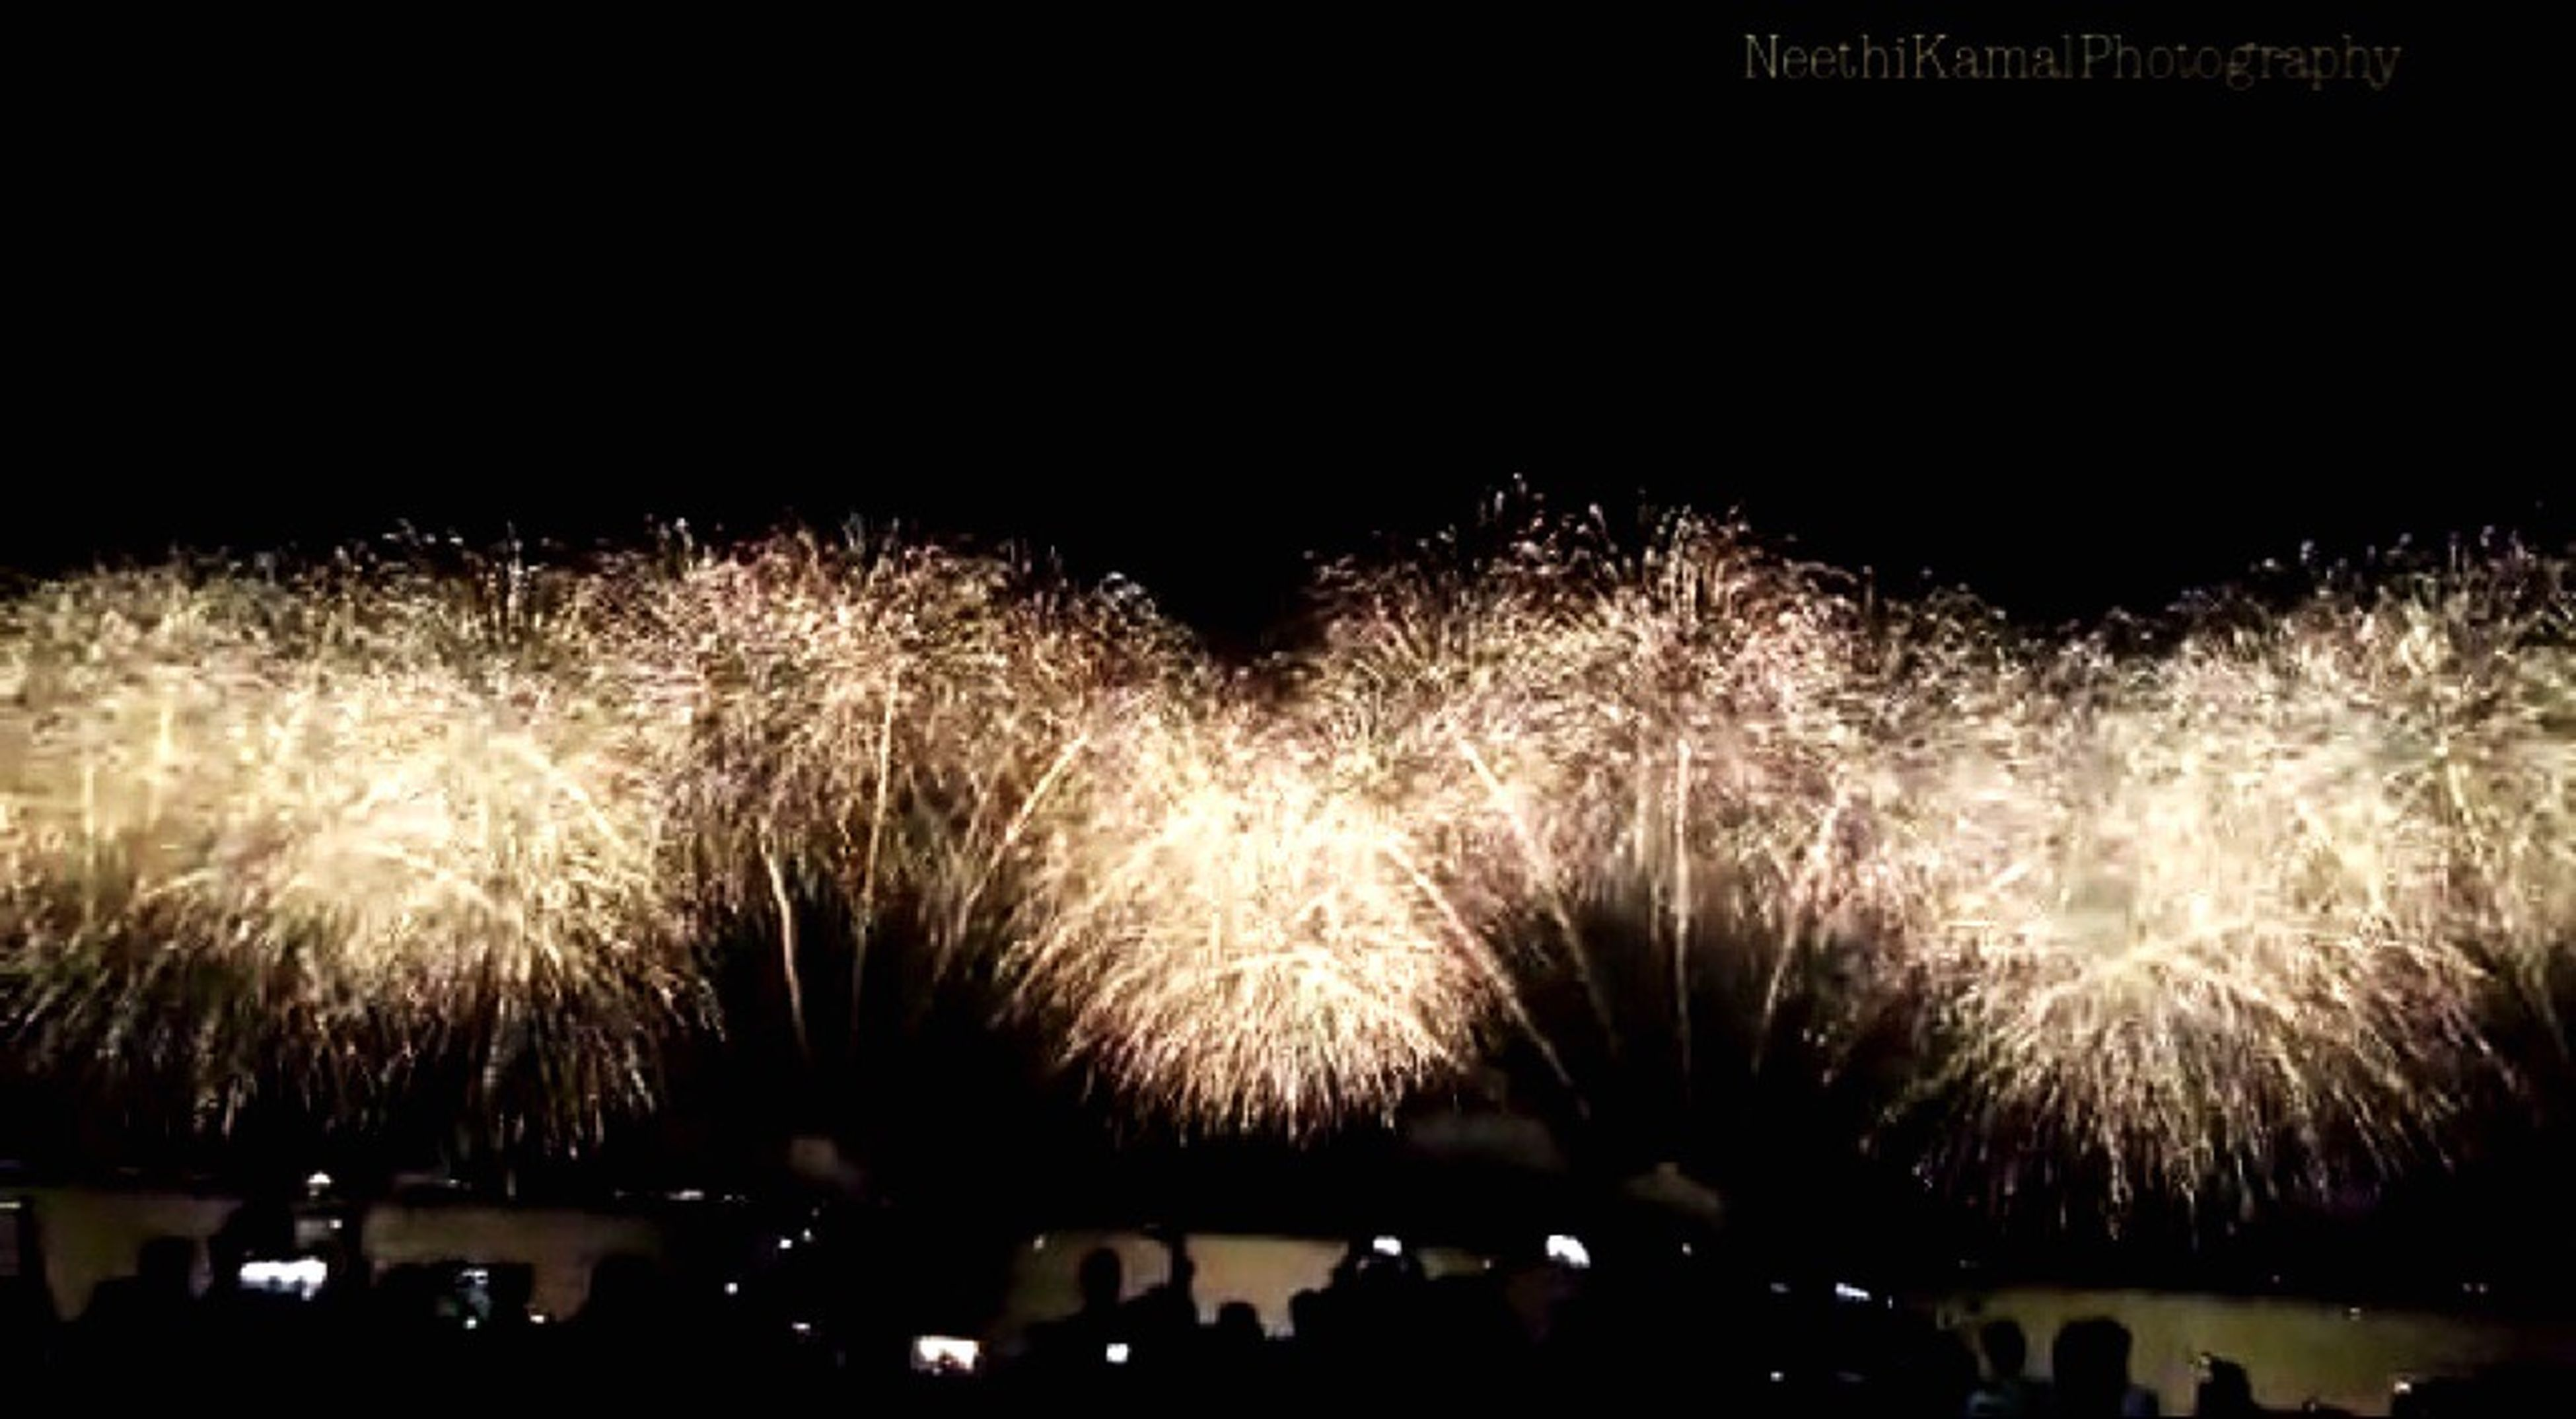 night, illuminated, silhouette, clear sky, dark, arts culture and entertainment, glowing, long exposure, motion, sky, copy space, tree, outdoors, event, light - natural phenomenon, blurred motion, celebration, firework display, low angle view, exploding